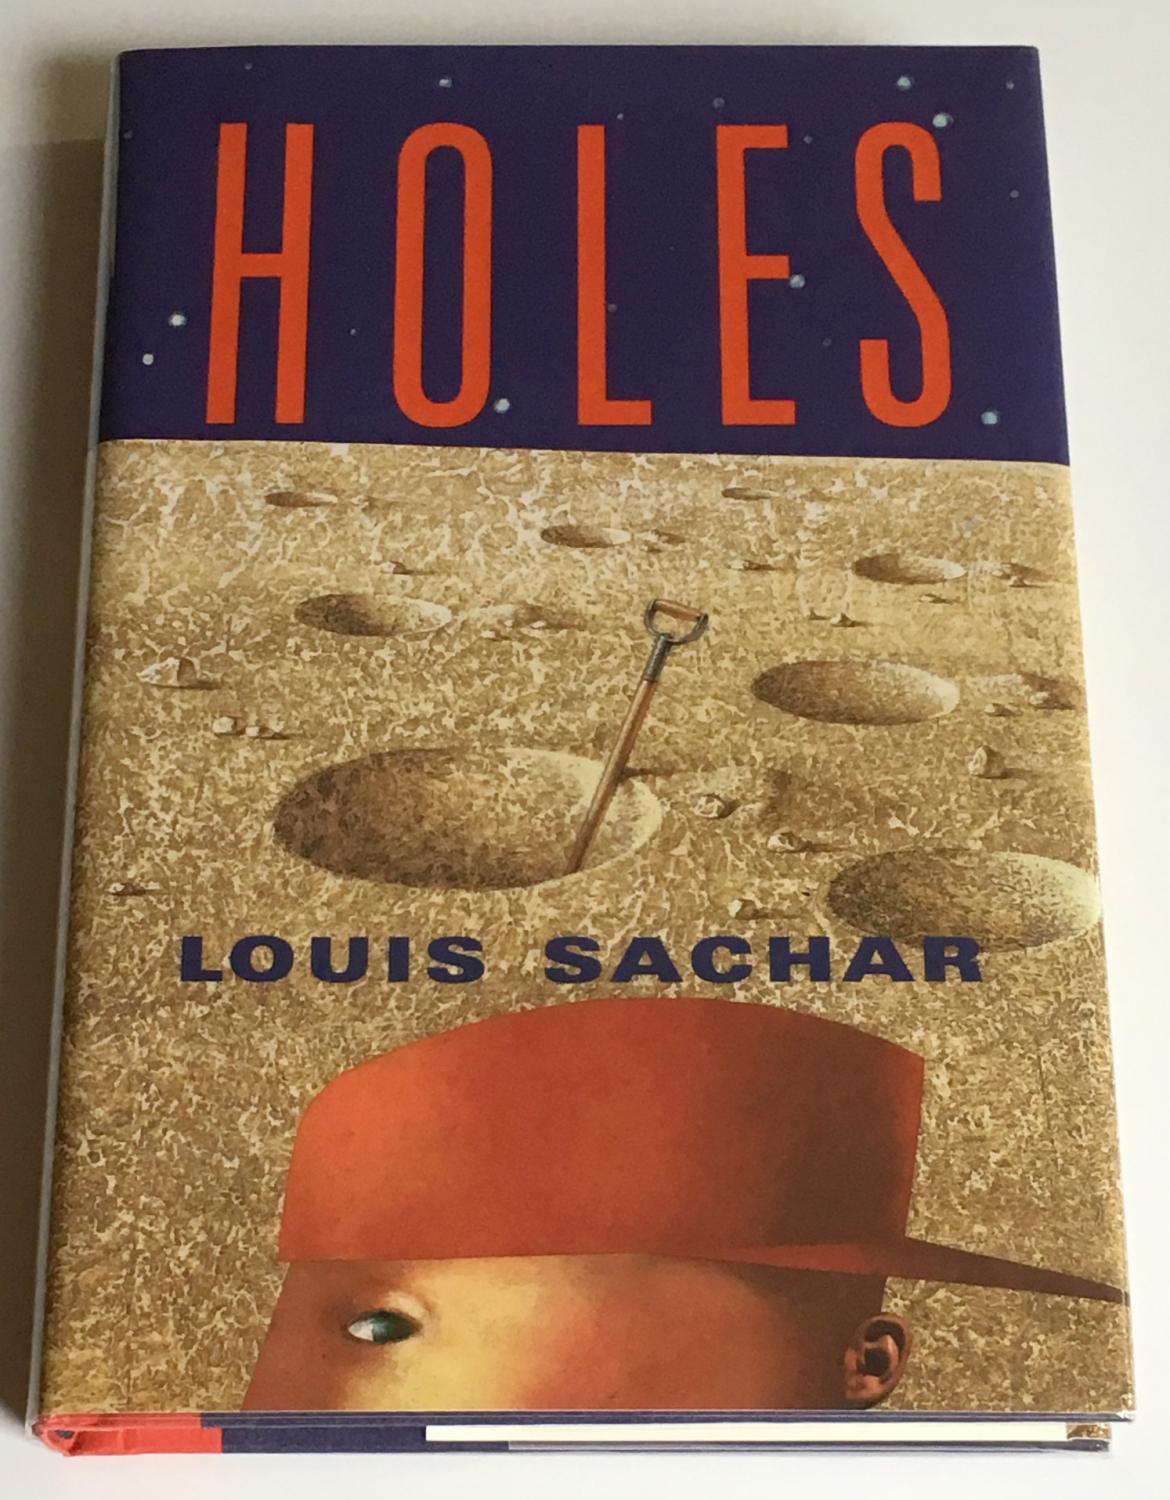 holes louis sachar shows the importance of friendship in times of adversity Holes(louis sachar shows the importance of friendship in times of adversity 2041 words may 29th, 2011 9 pages holes shows the importance of friendship in times of trouble and danger.